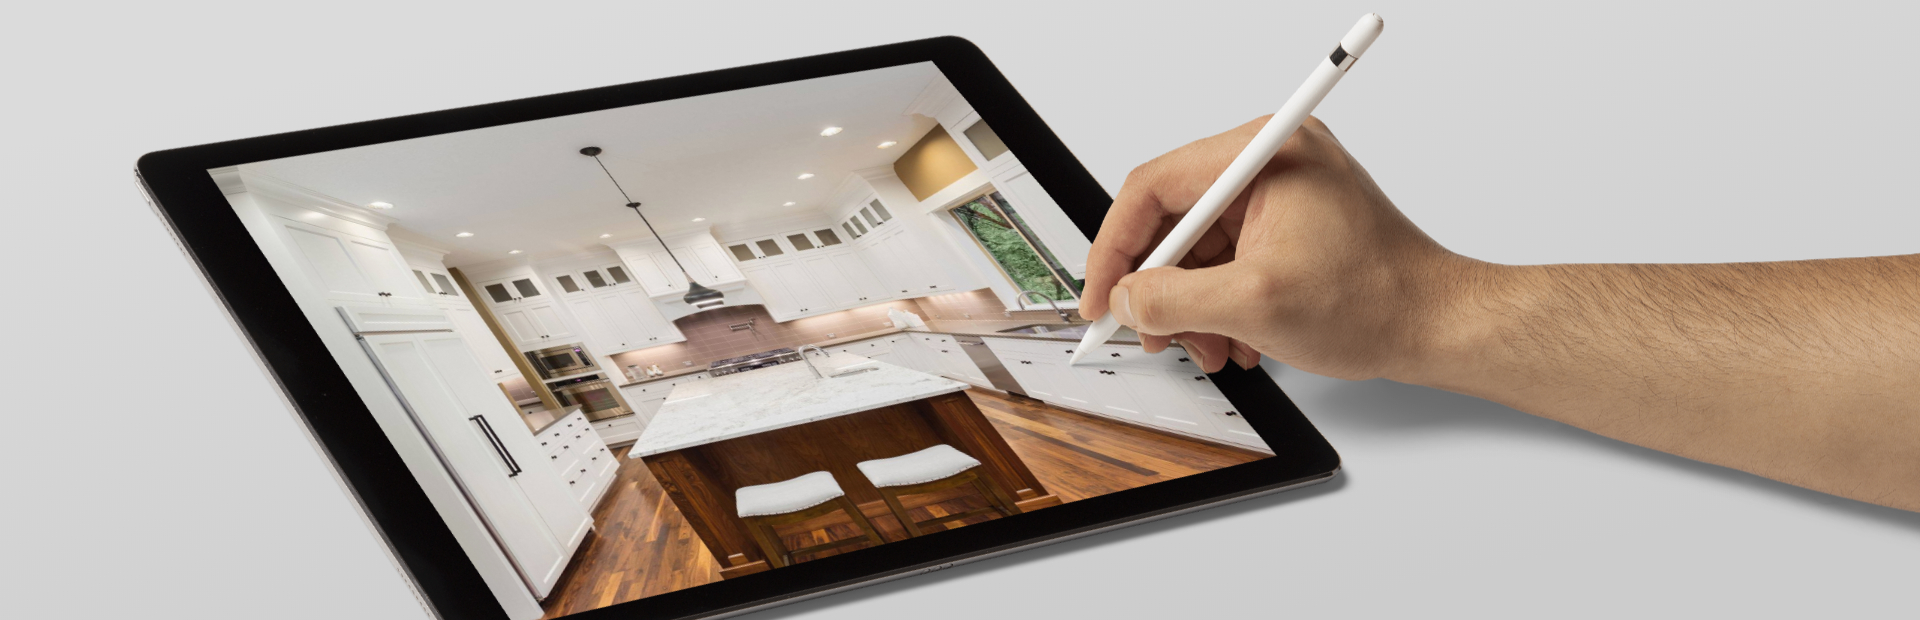 Virtual Kitchen Designer Ipad